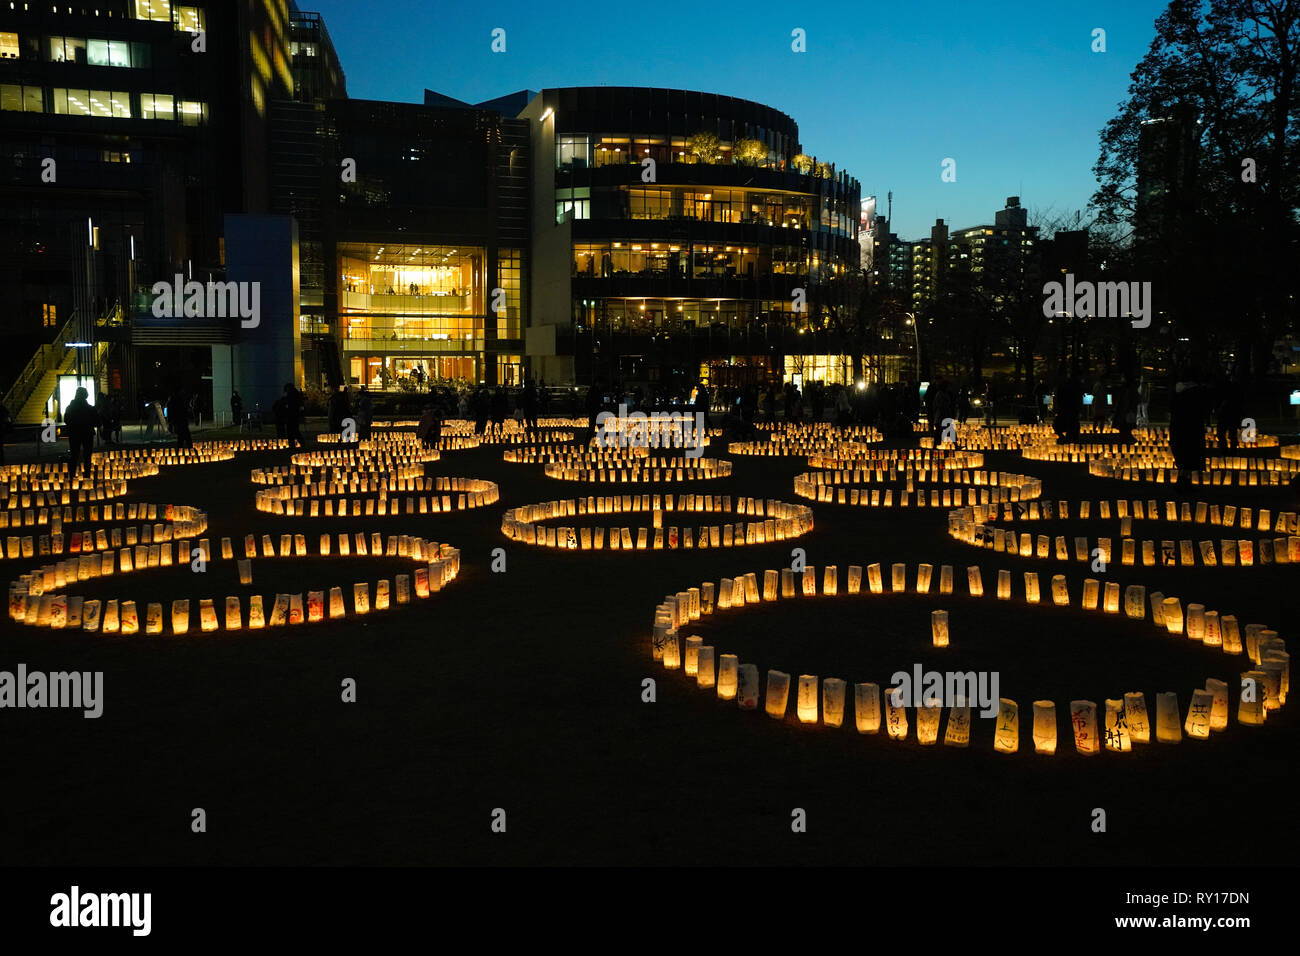 Tokyo, Japan. 11th Mar, 2019. Candles with messages dedicated to the people affected by the Japan March 11 Great East Japan Earthquake is seen at a park in Tokyo on March 11, 2019, Tokyo, Japan. This year marks the 8th anniversary of the 2011 disaster. Credit: AFLO/Alamy Live News - Stock Image